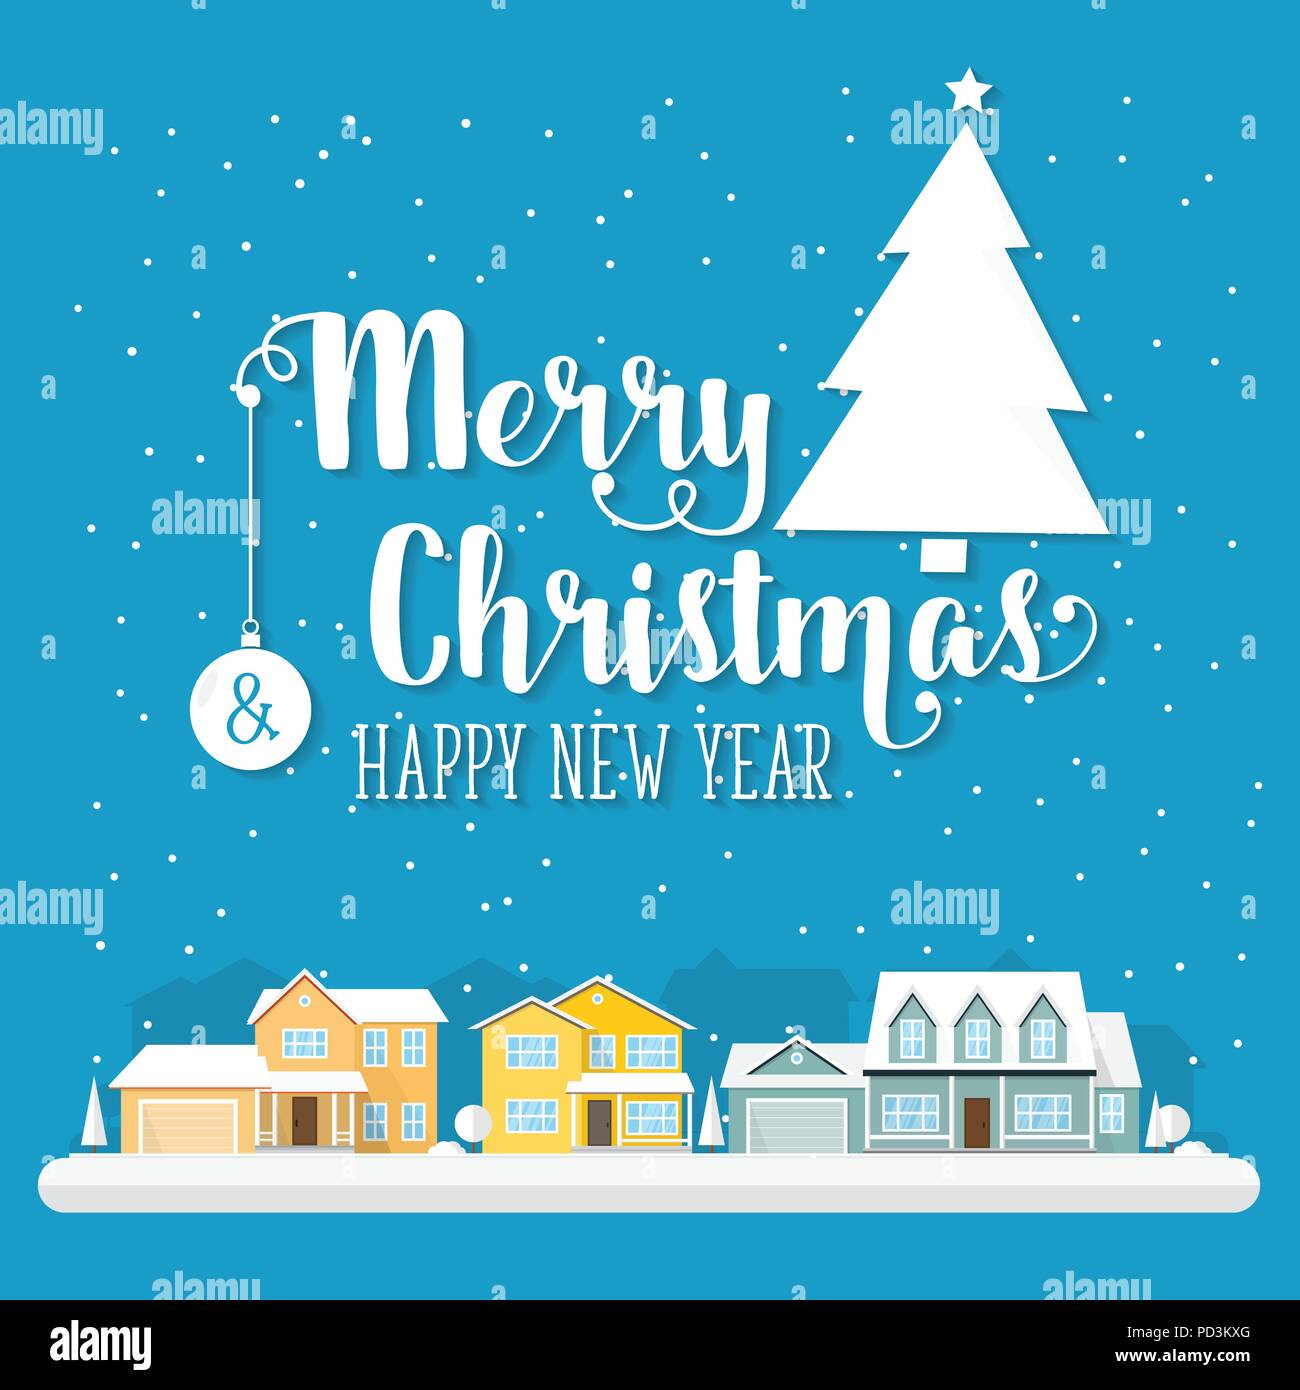 Merry christmas and happy new year greeting card vector merry christmas and happy new year greeting card vector illustration xmas design for invitations banners and flyers m4hsunfo